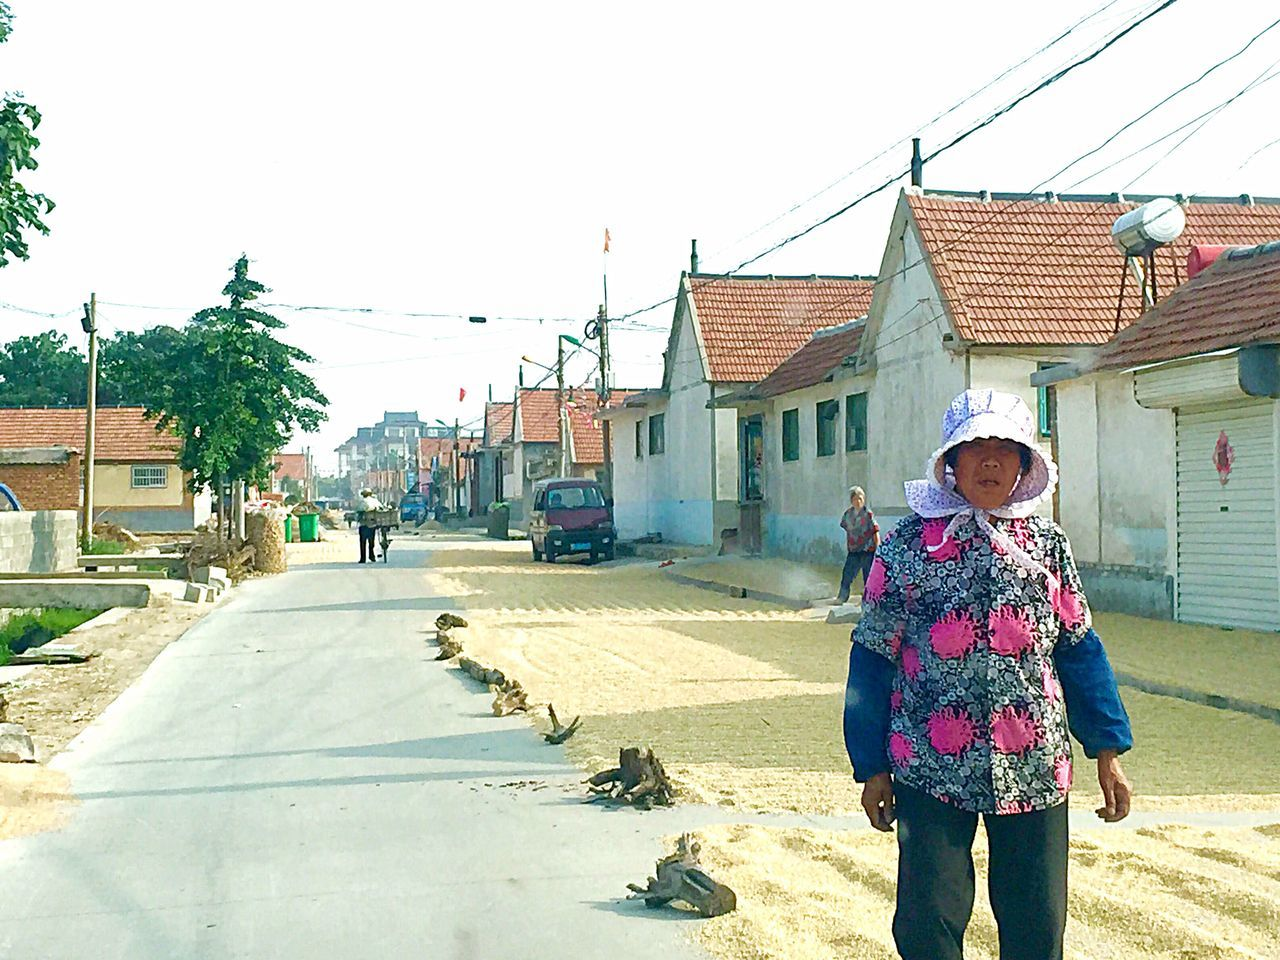 Village life in a rural countryside in northern China Street Road Village Life Woman Hat Wearing Hat Farmhouses Power Lines Electrical Poles Rural Urban Countryside Travel Shandong China Culture Grains Wheat Wheat Drying On Street Colour Of Life People And Places